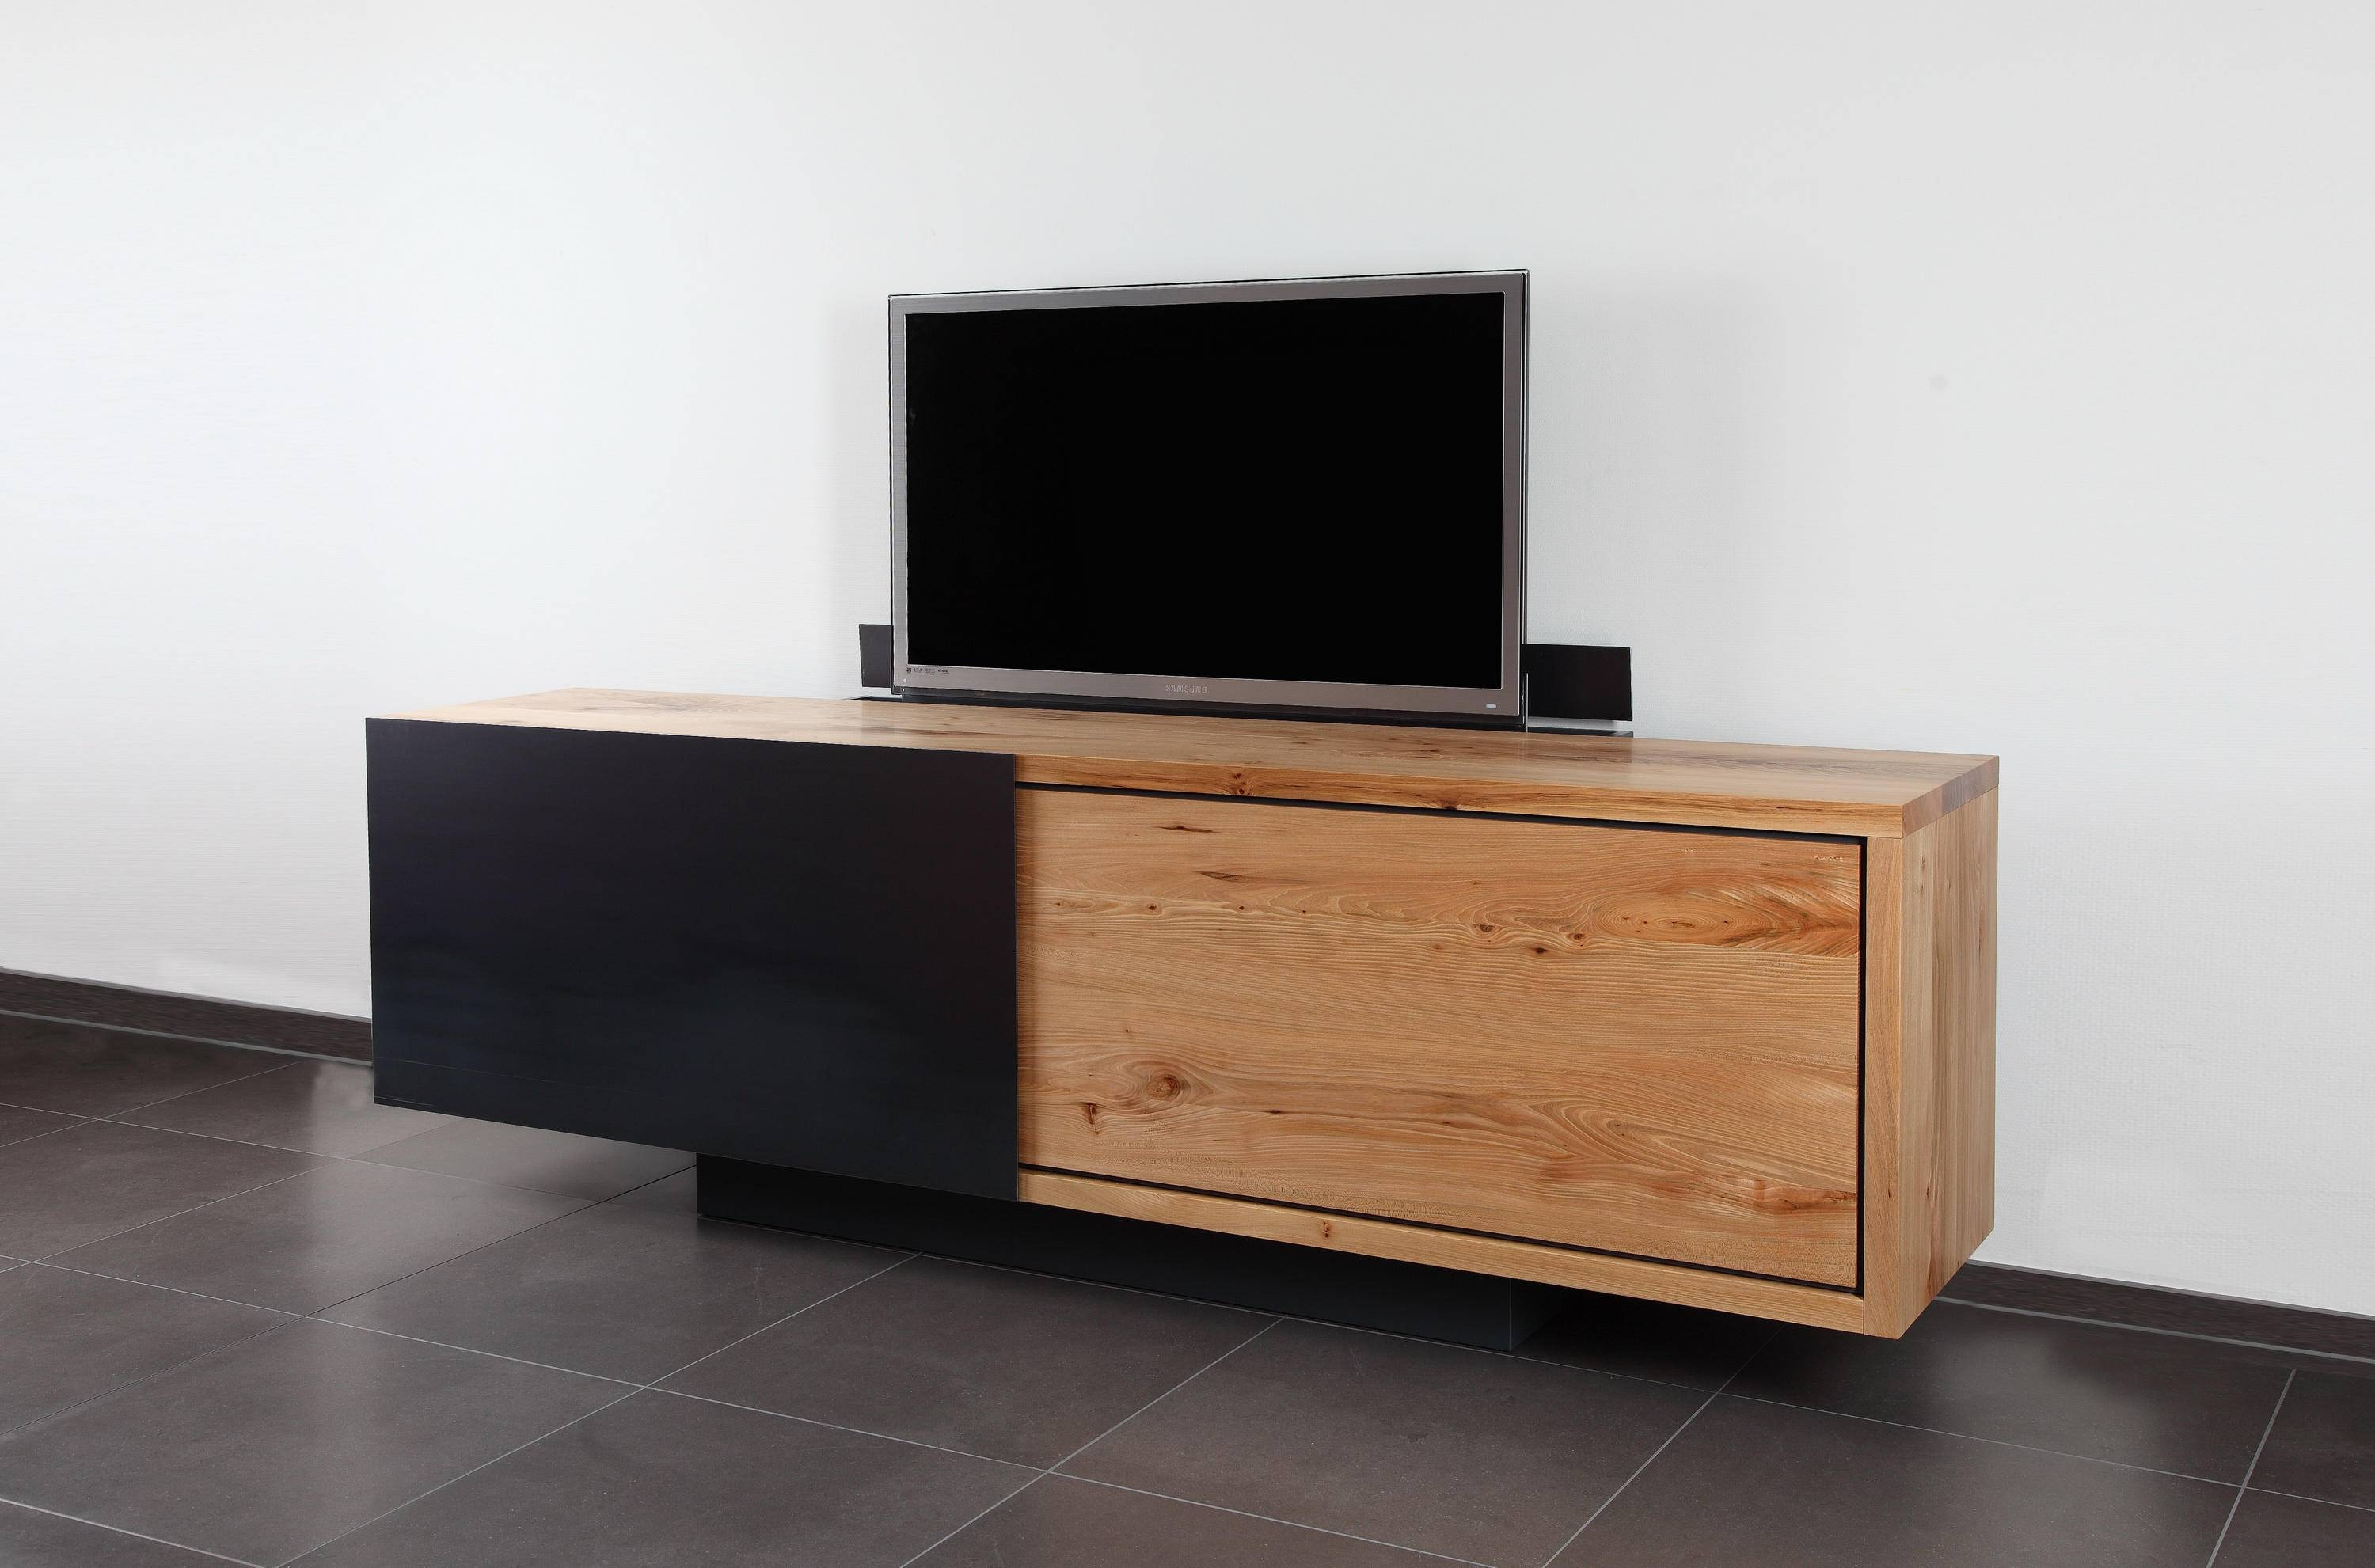 Ign. B2. Tv. Sideboard. - Multimedia Sideboards From Ign. Design with Tv Sideboards (Image 14 of 30)